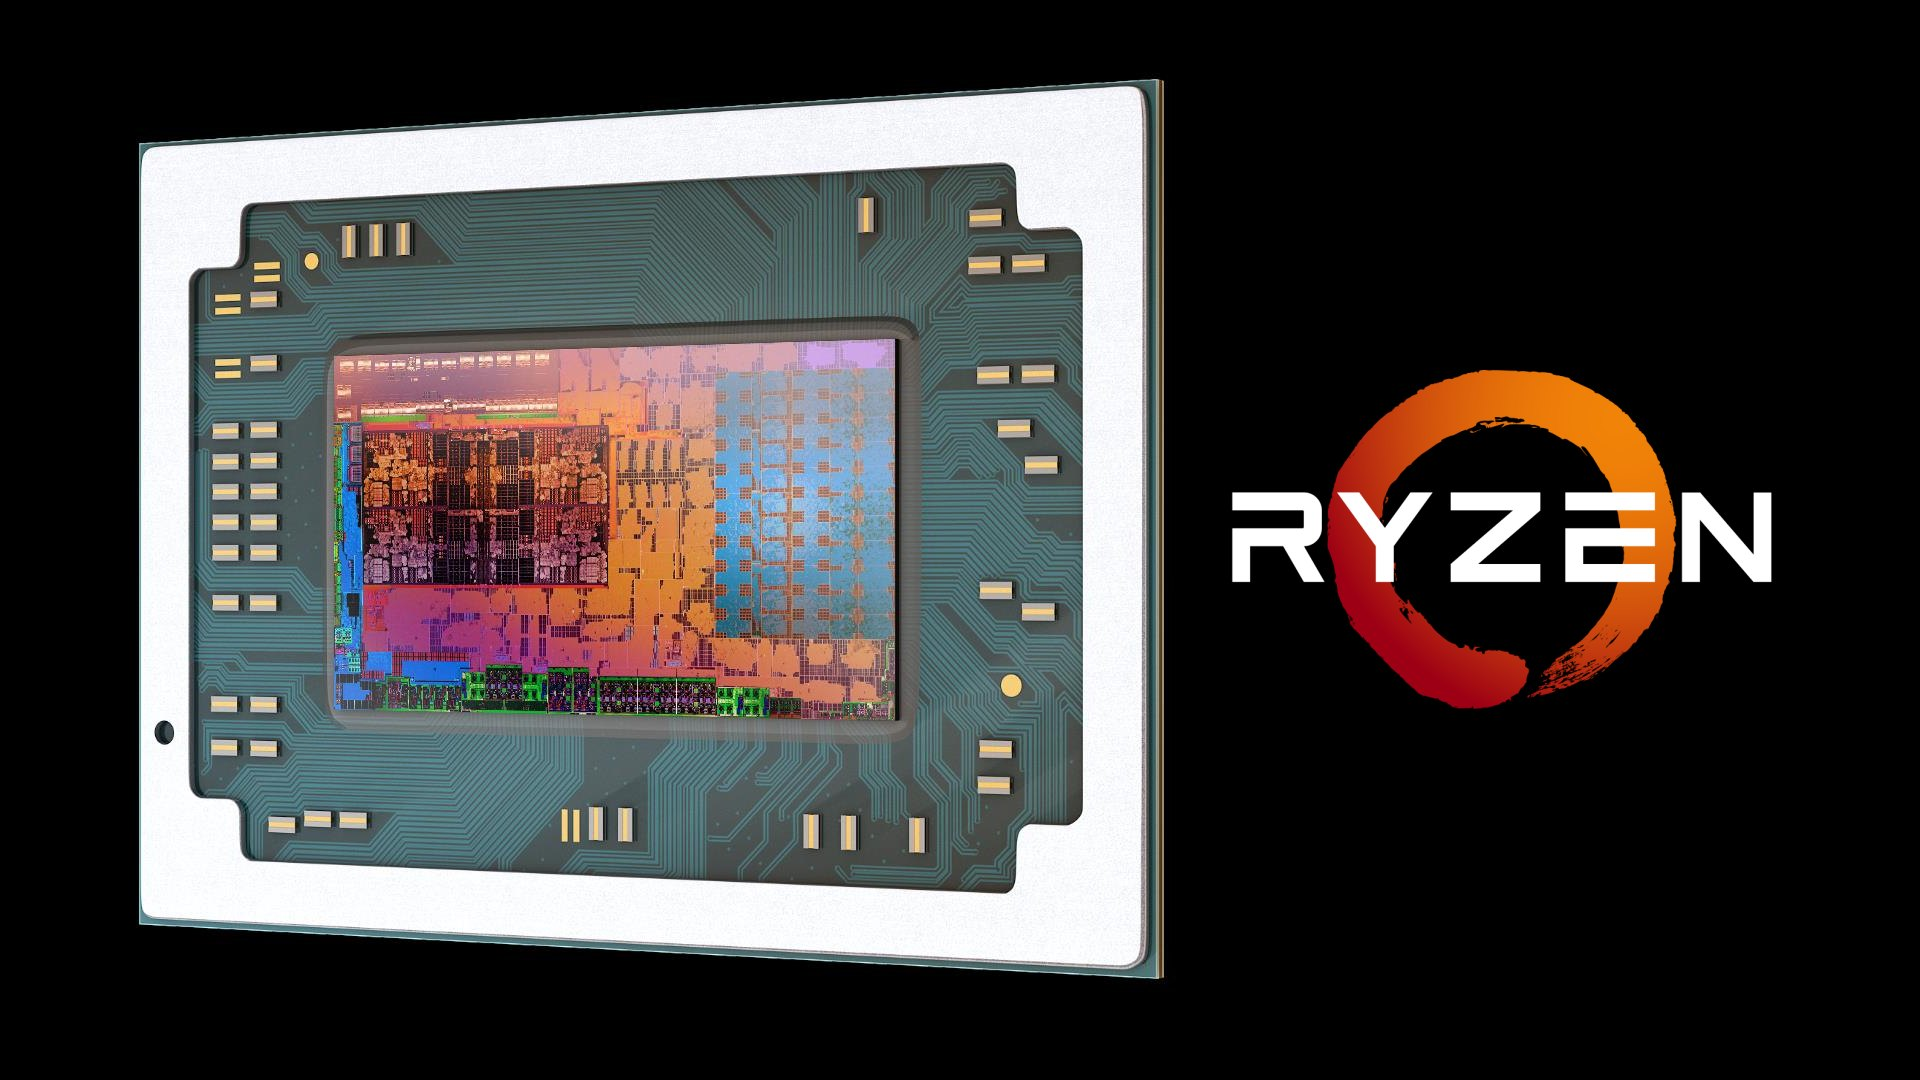 Photo of AMD's next integrated processor generation will receive an artistic name